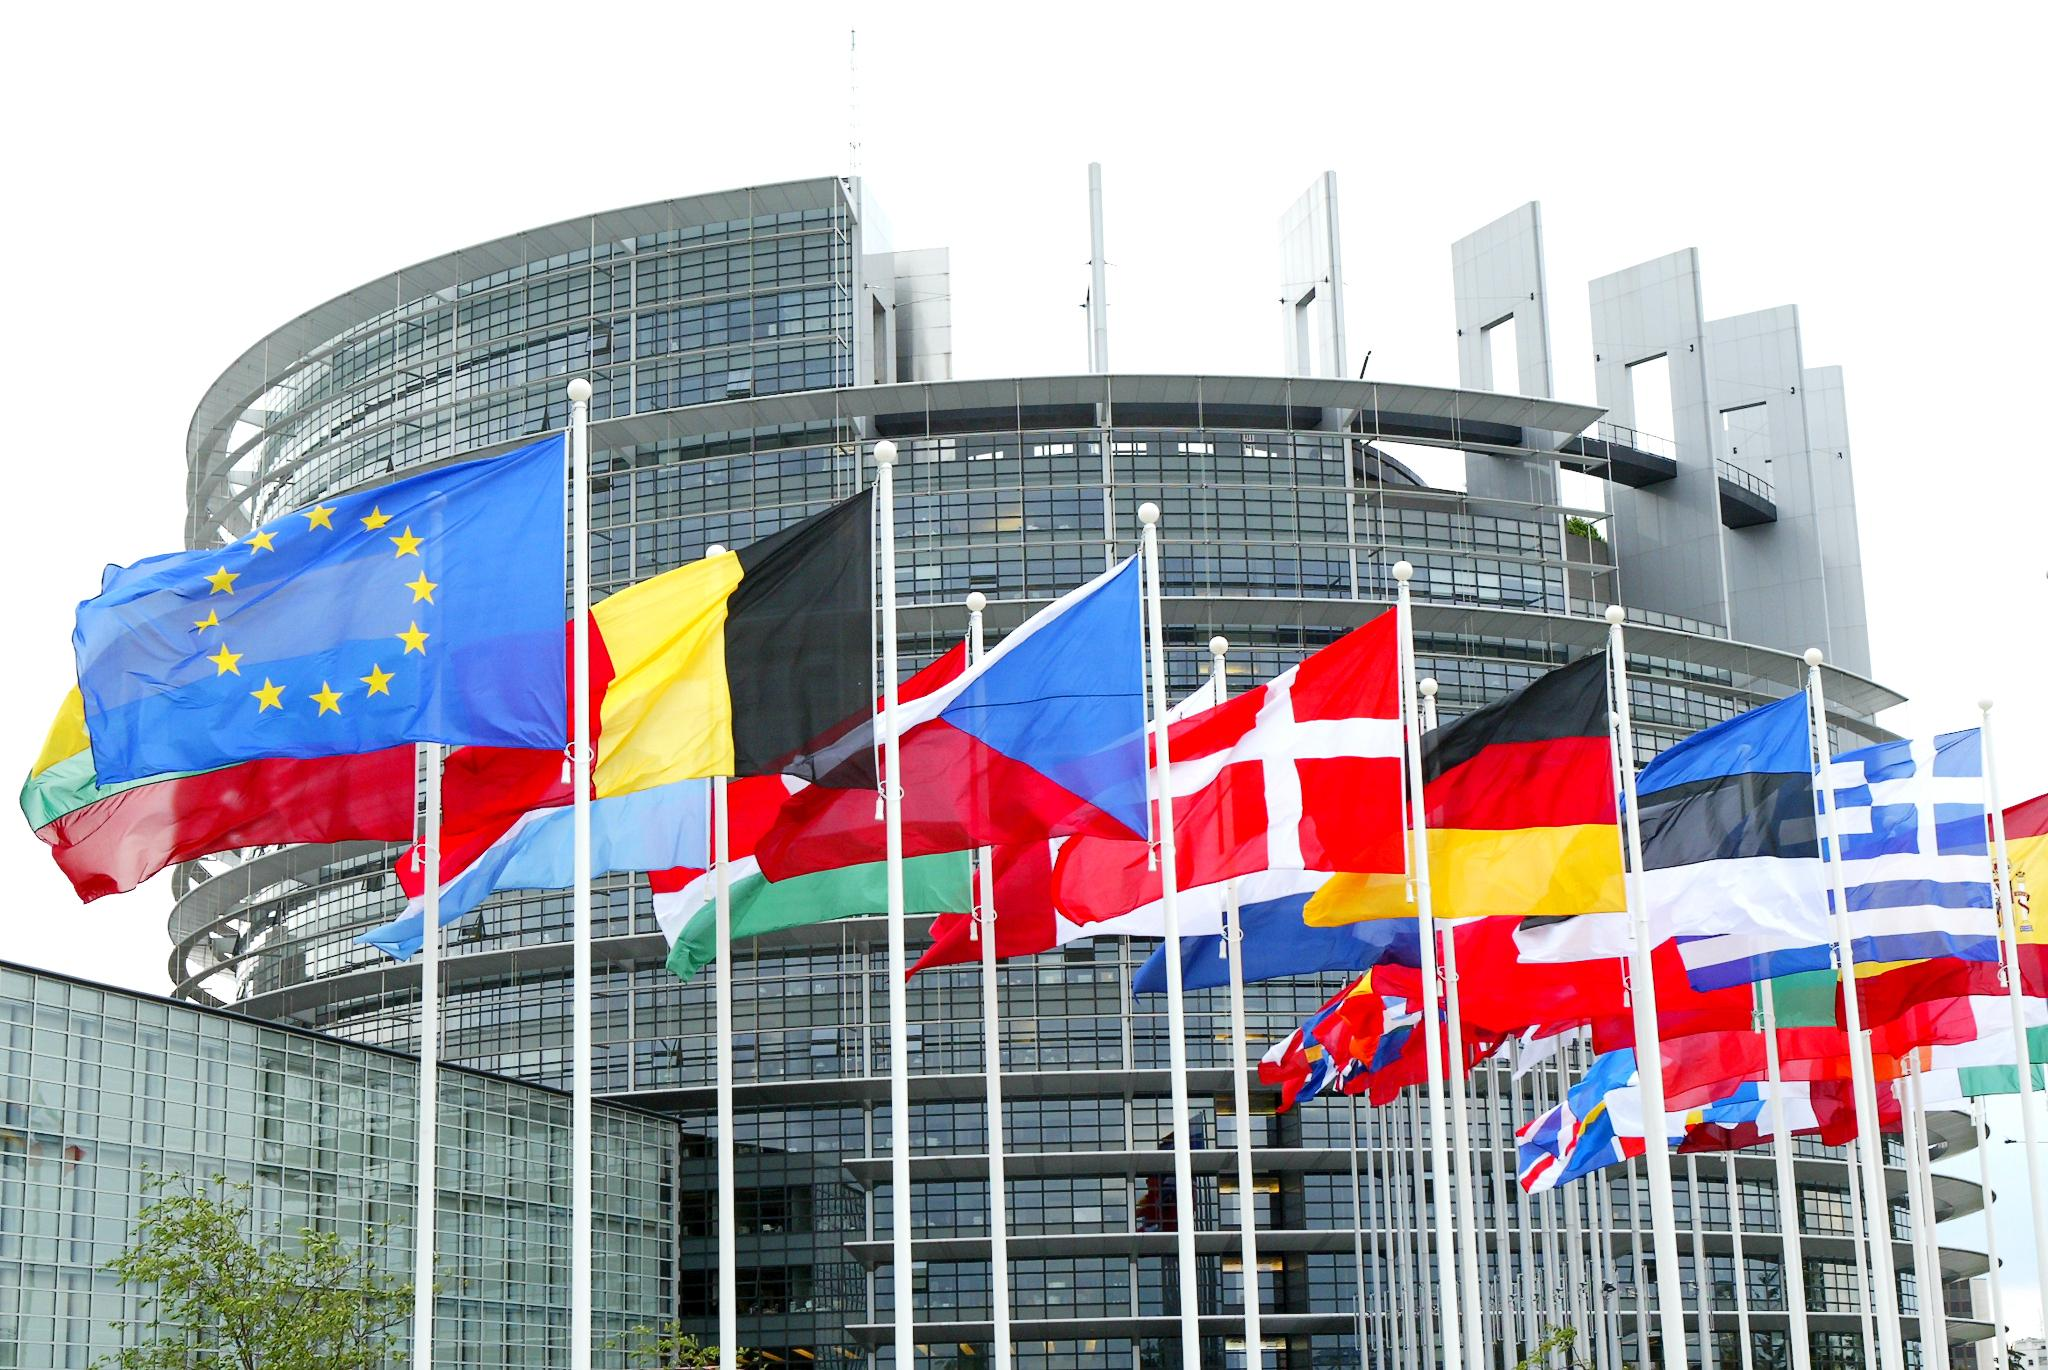 The MEPs point of view on the energy efficiency topic